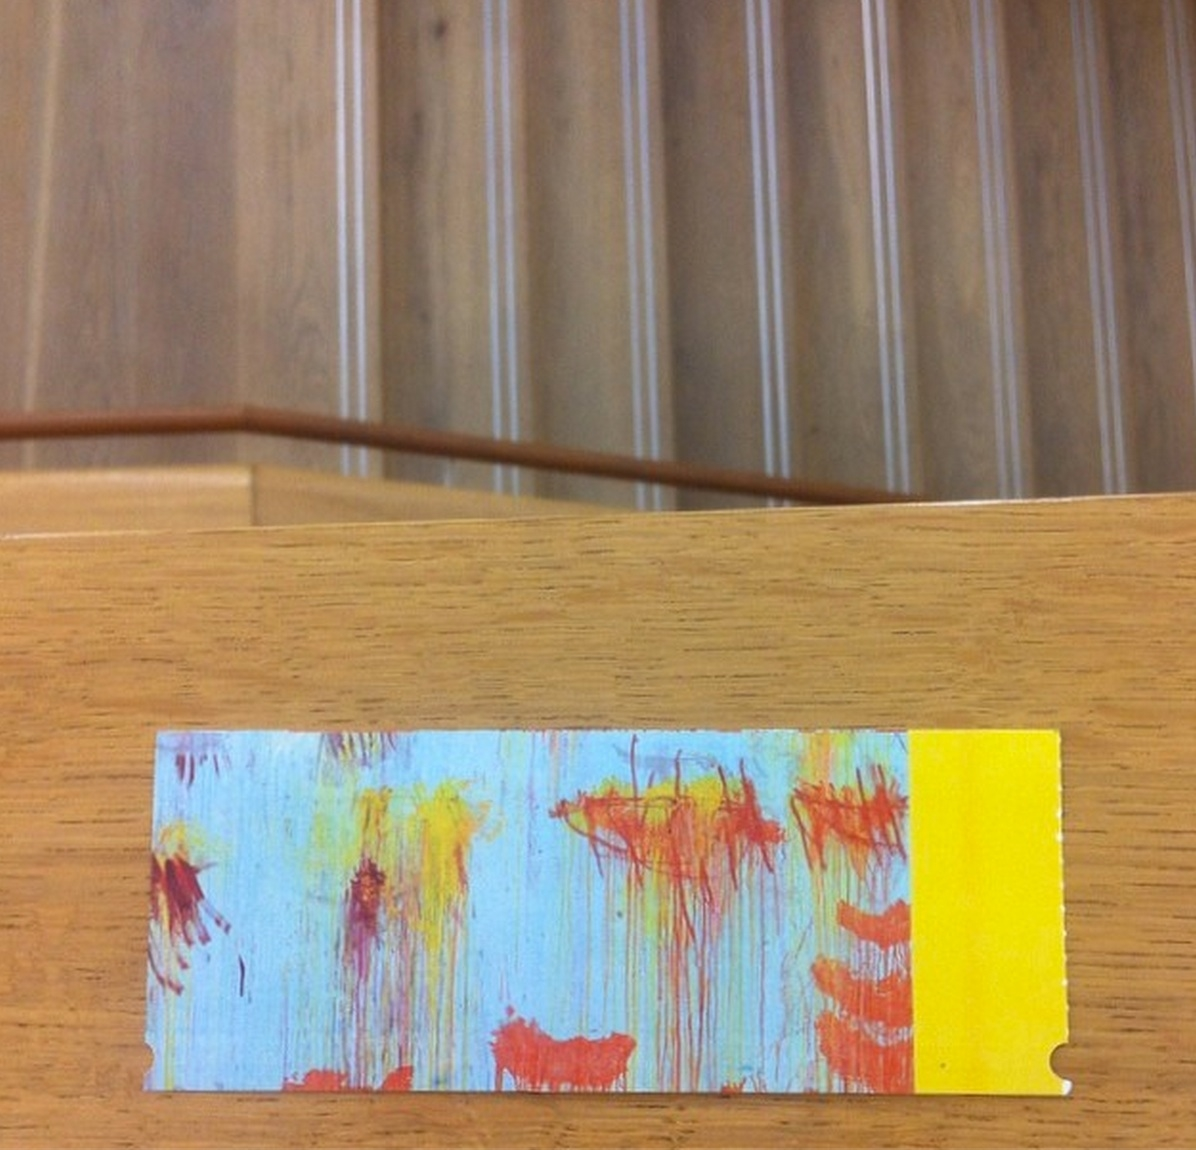 Museum Brandhorst Interior with Cy Twombly Ticket